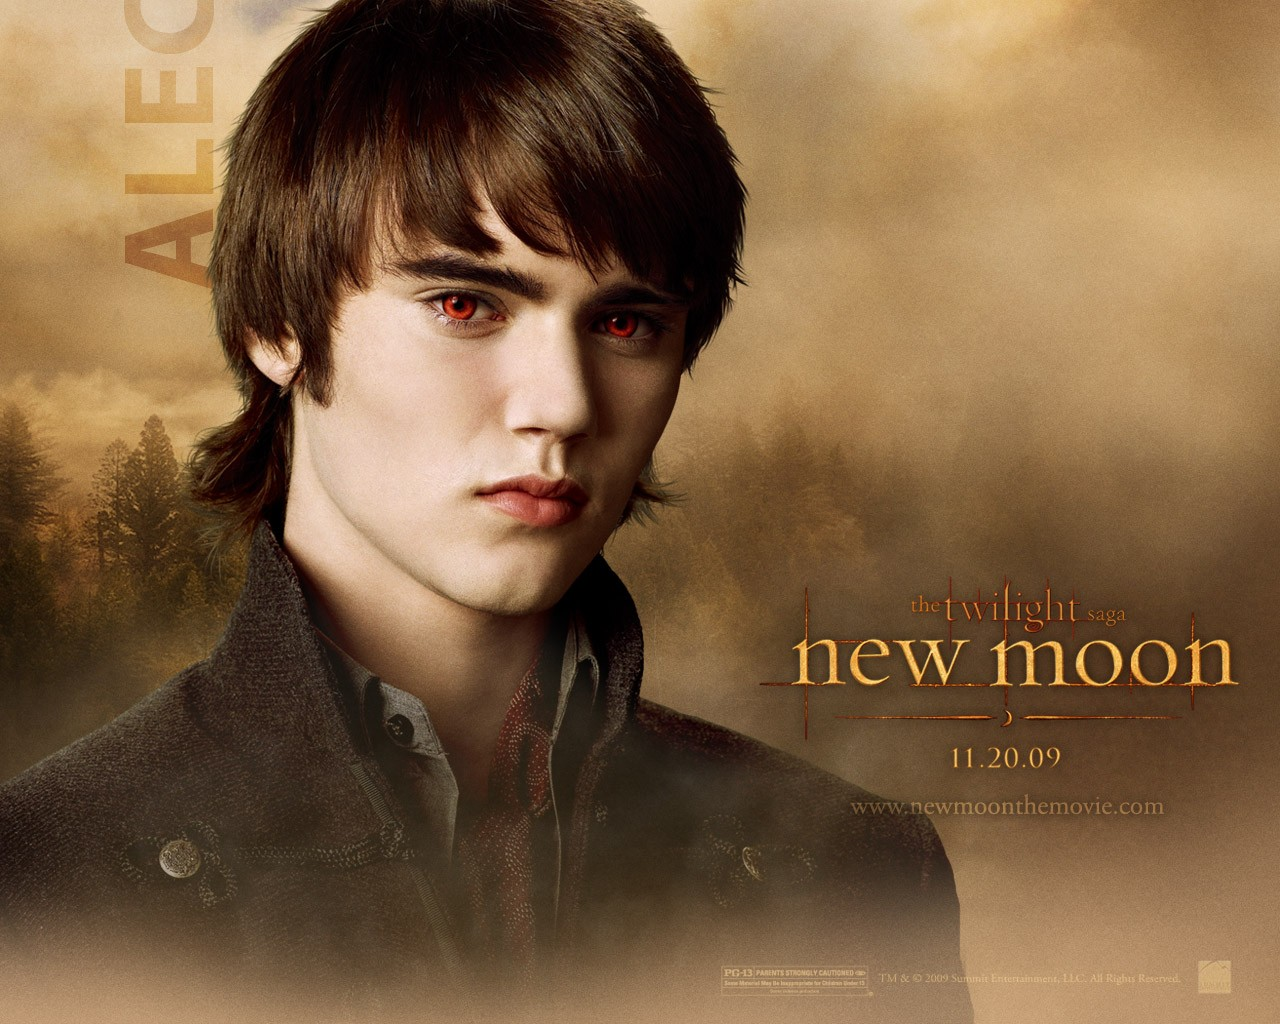 Un wallpaper dedicato al personaggio di Alec (Cameron Bright) per il film Twilight Saga: New Moon